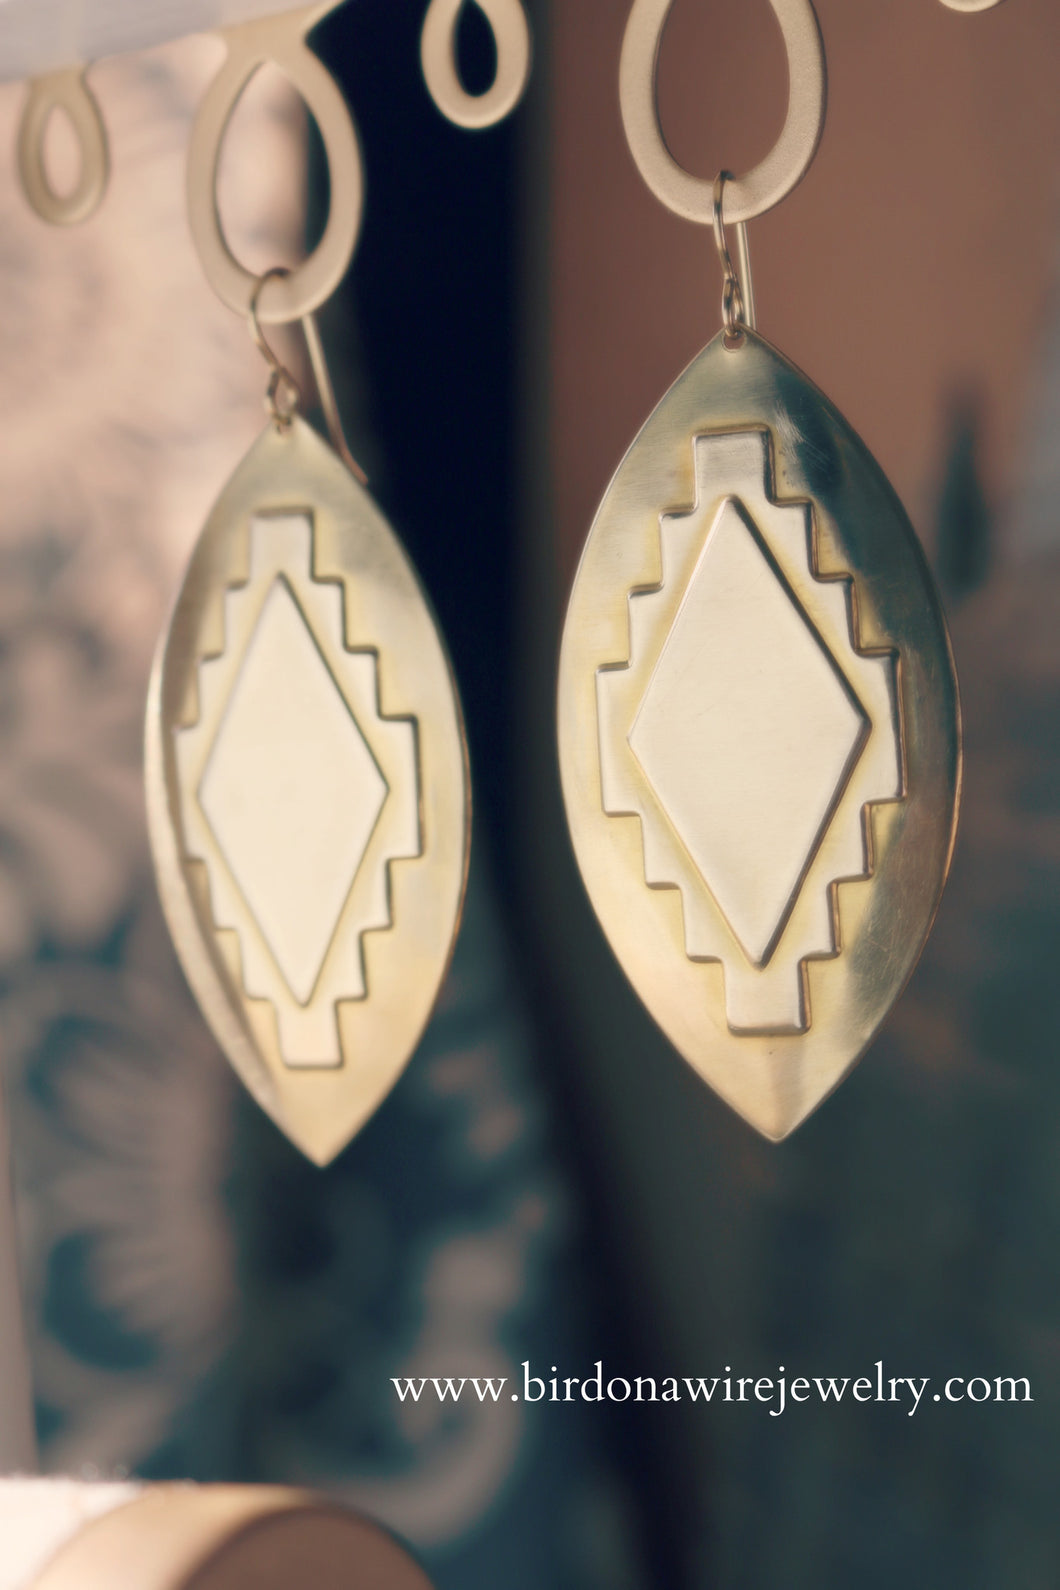 The Aztec Earrings